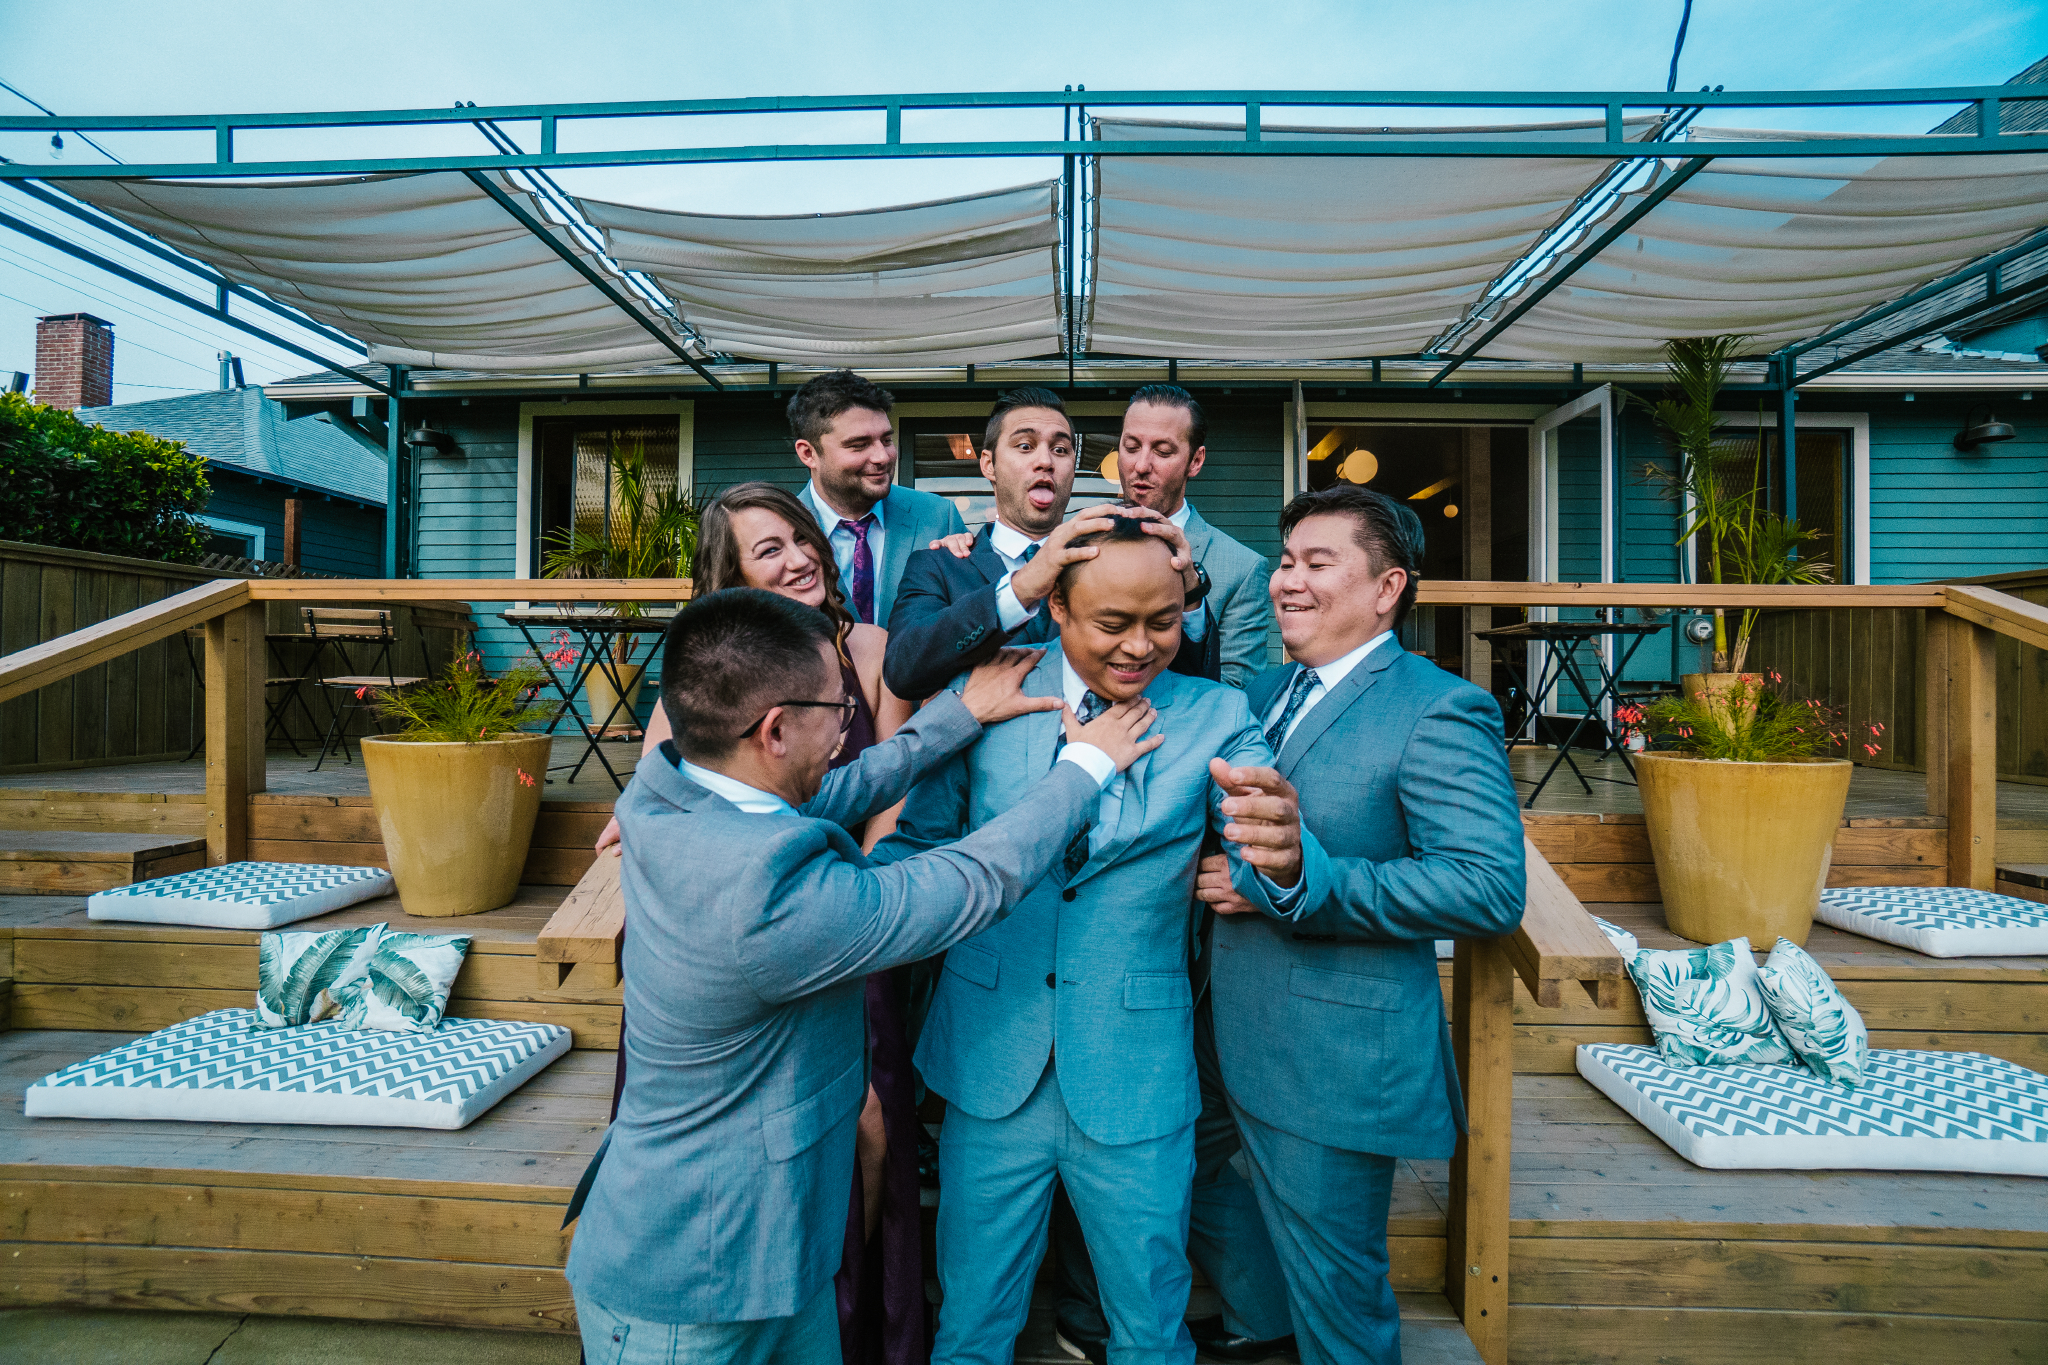 san diego wedding   photographer | group of people touching man on staircase